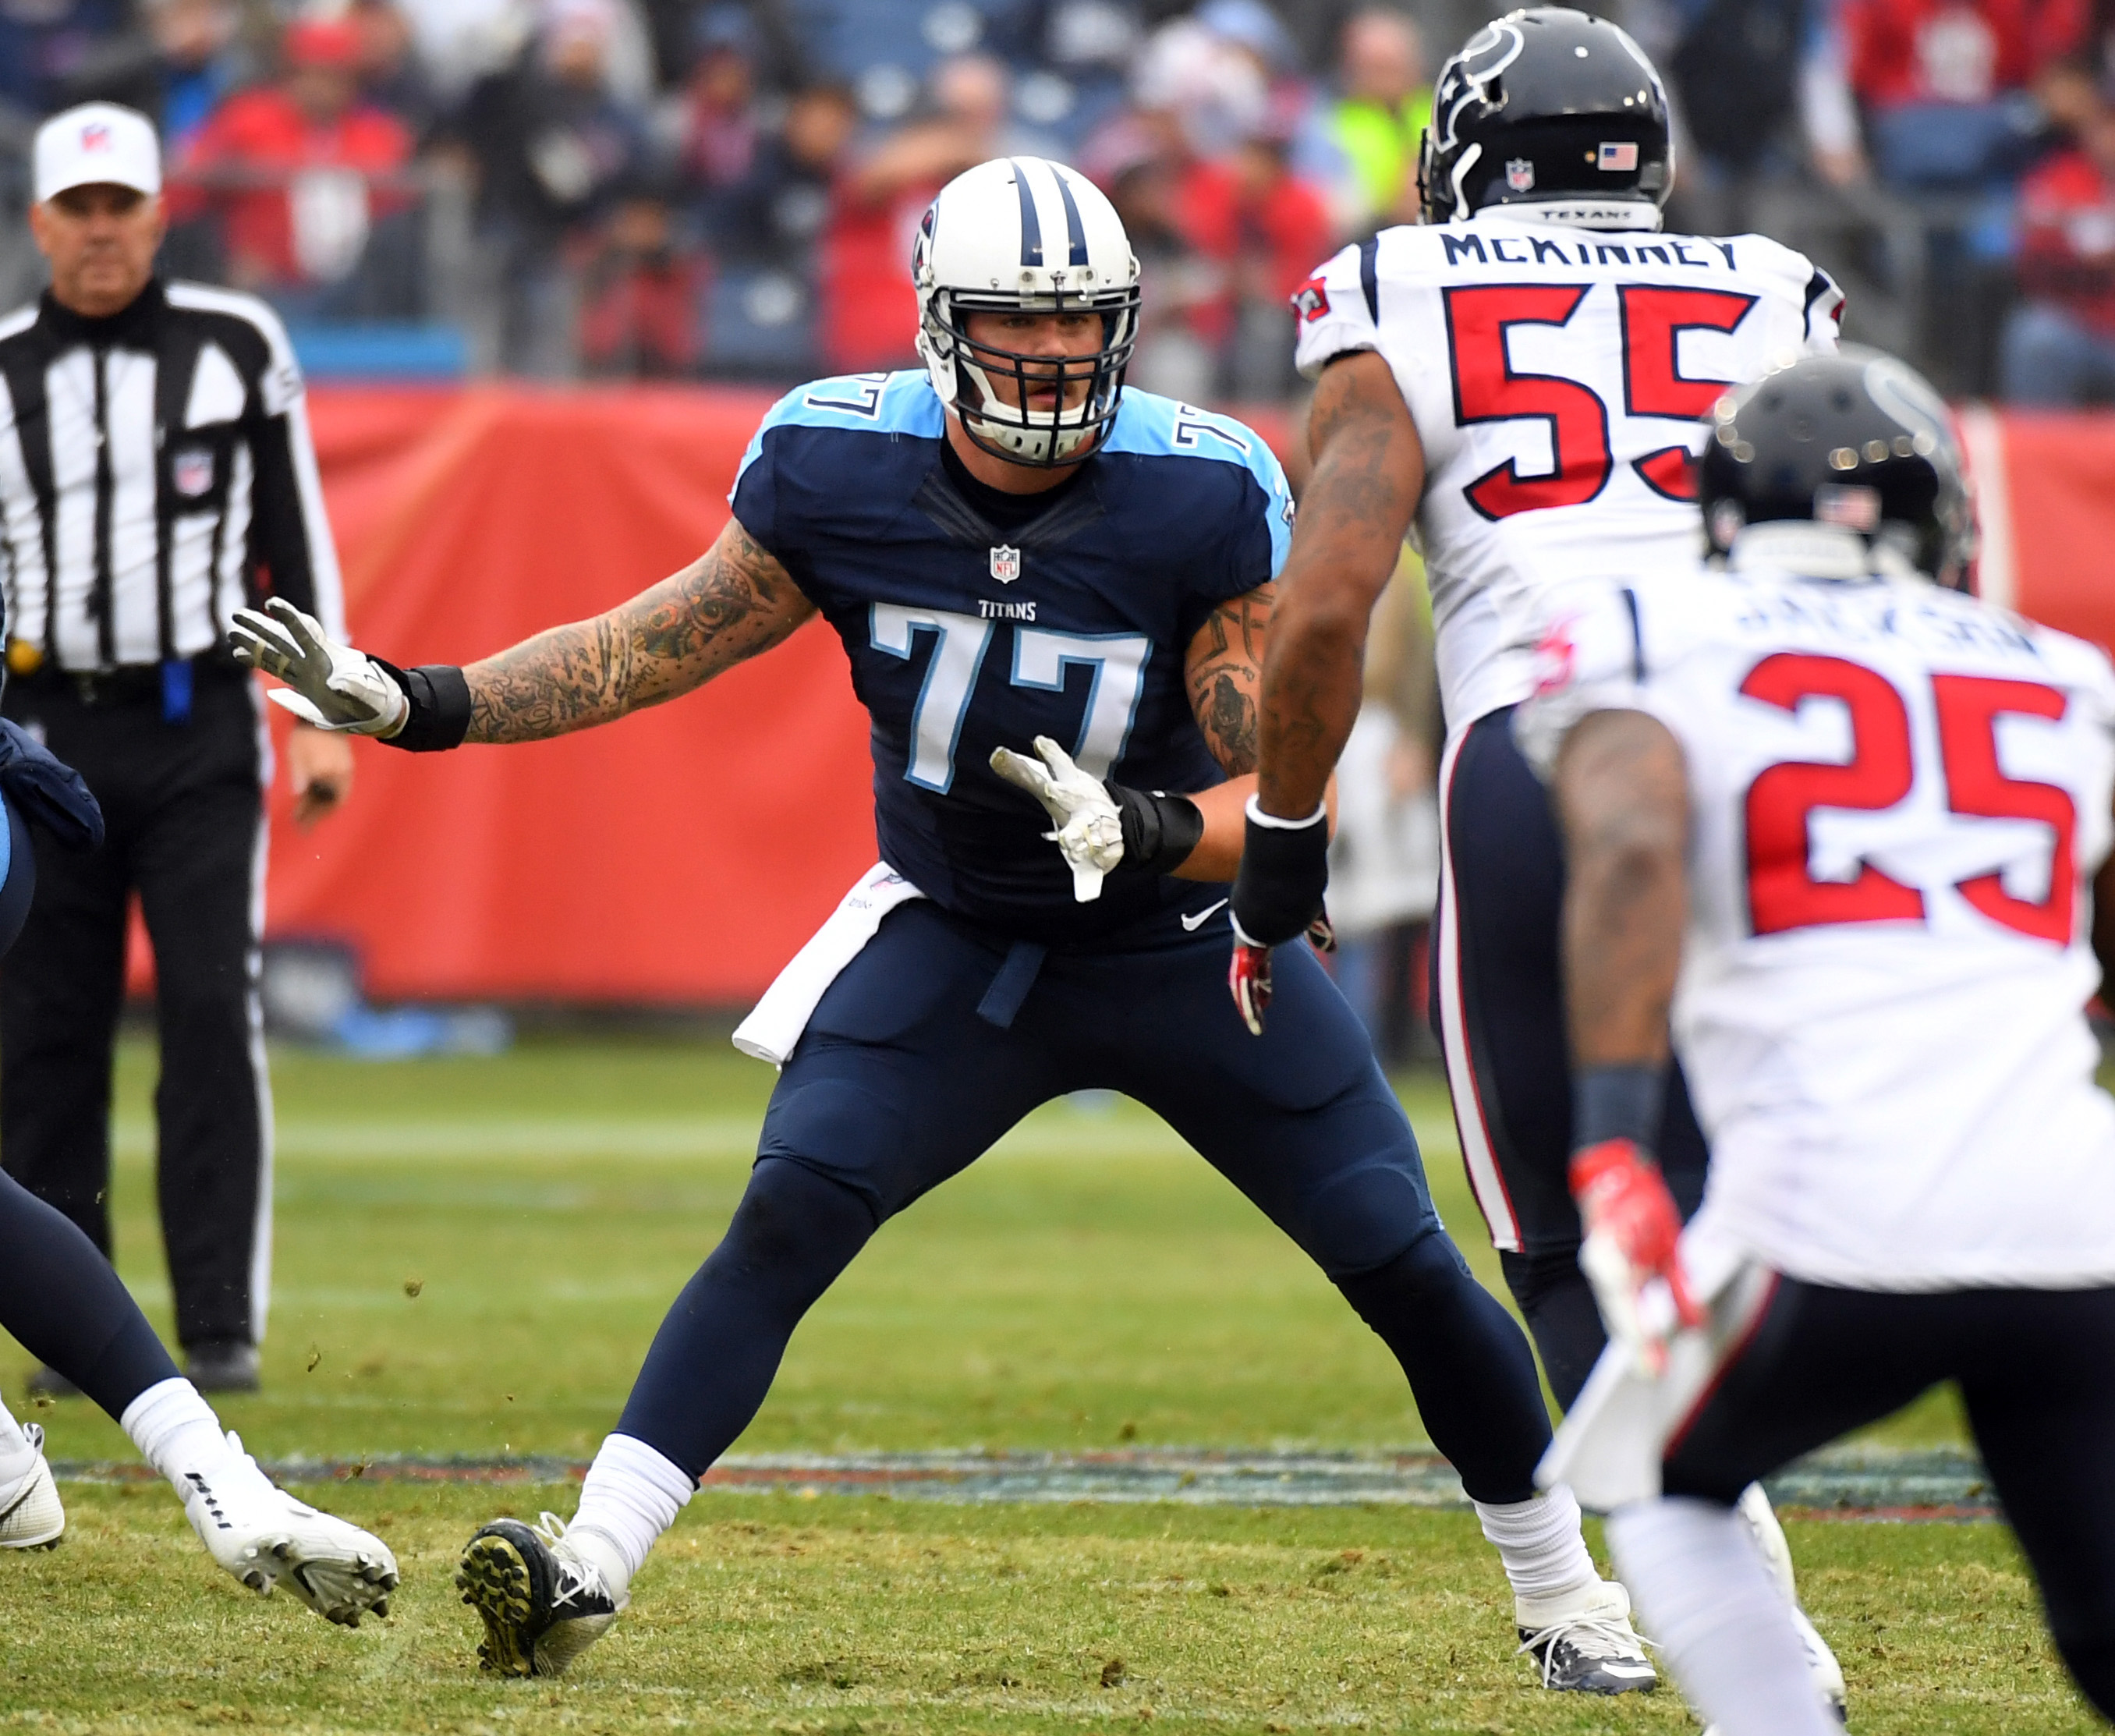 9782059-nfl-houston-texans-at-tennessee-titans